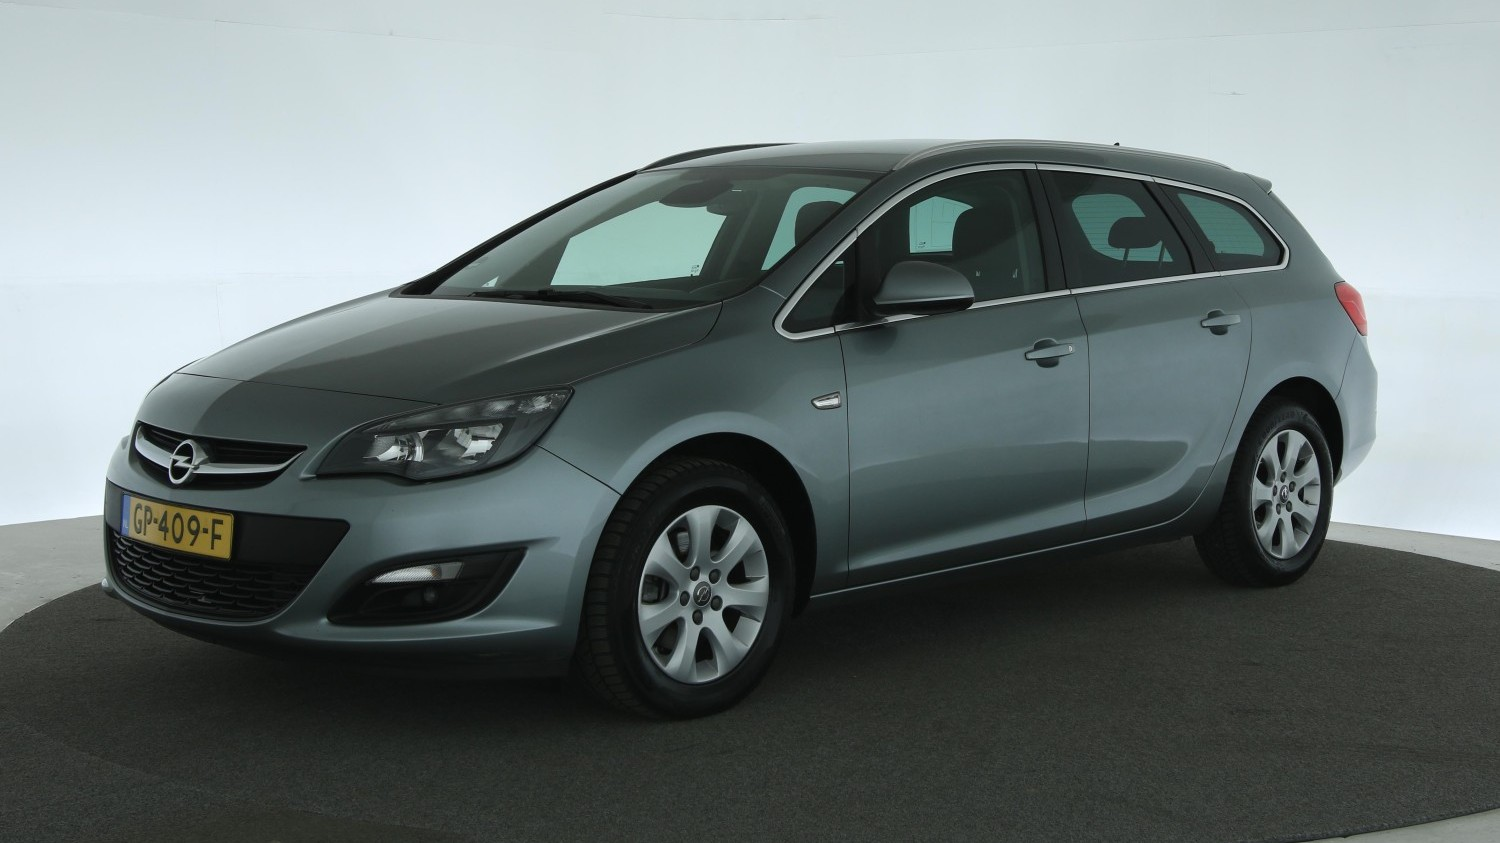 Opel Astra Station 2015 GP-409-F 1